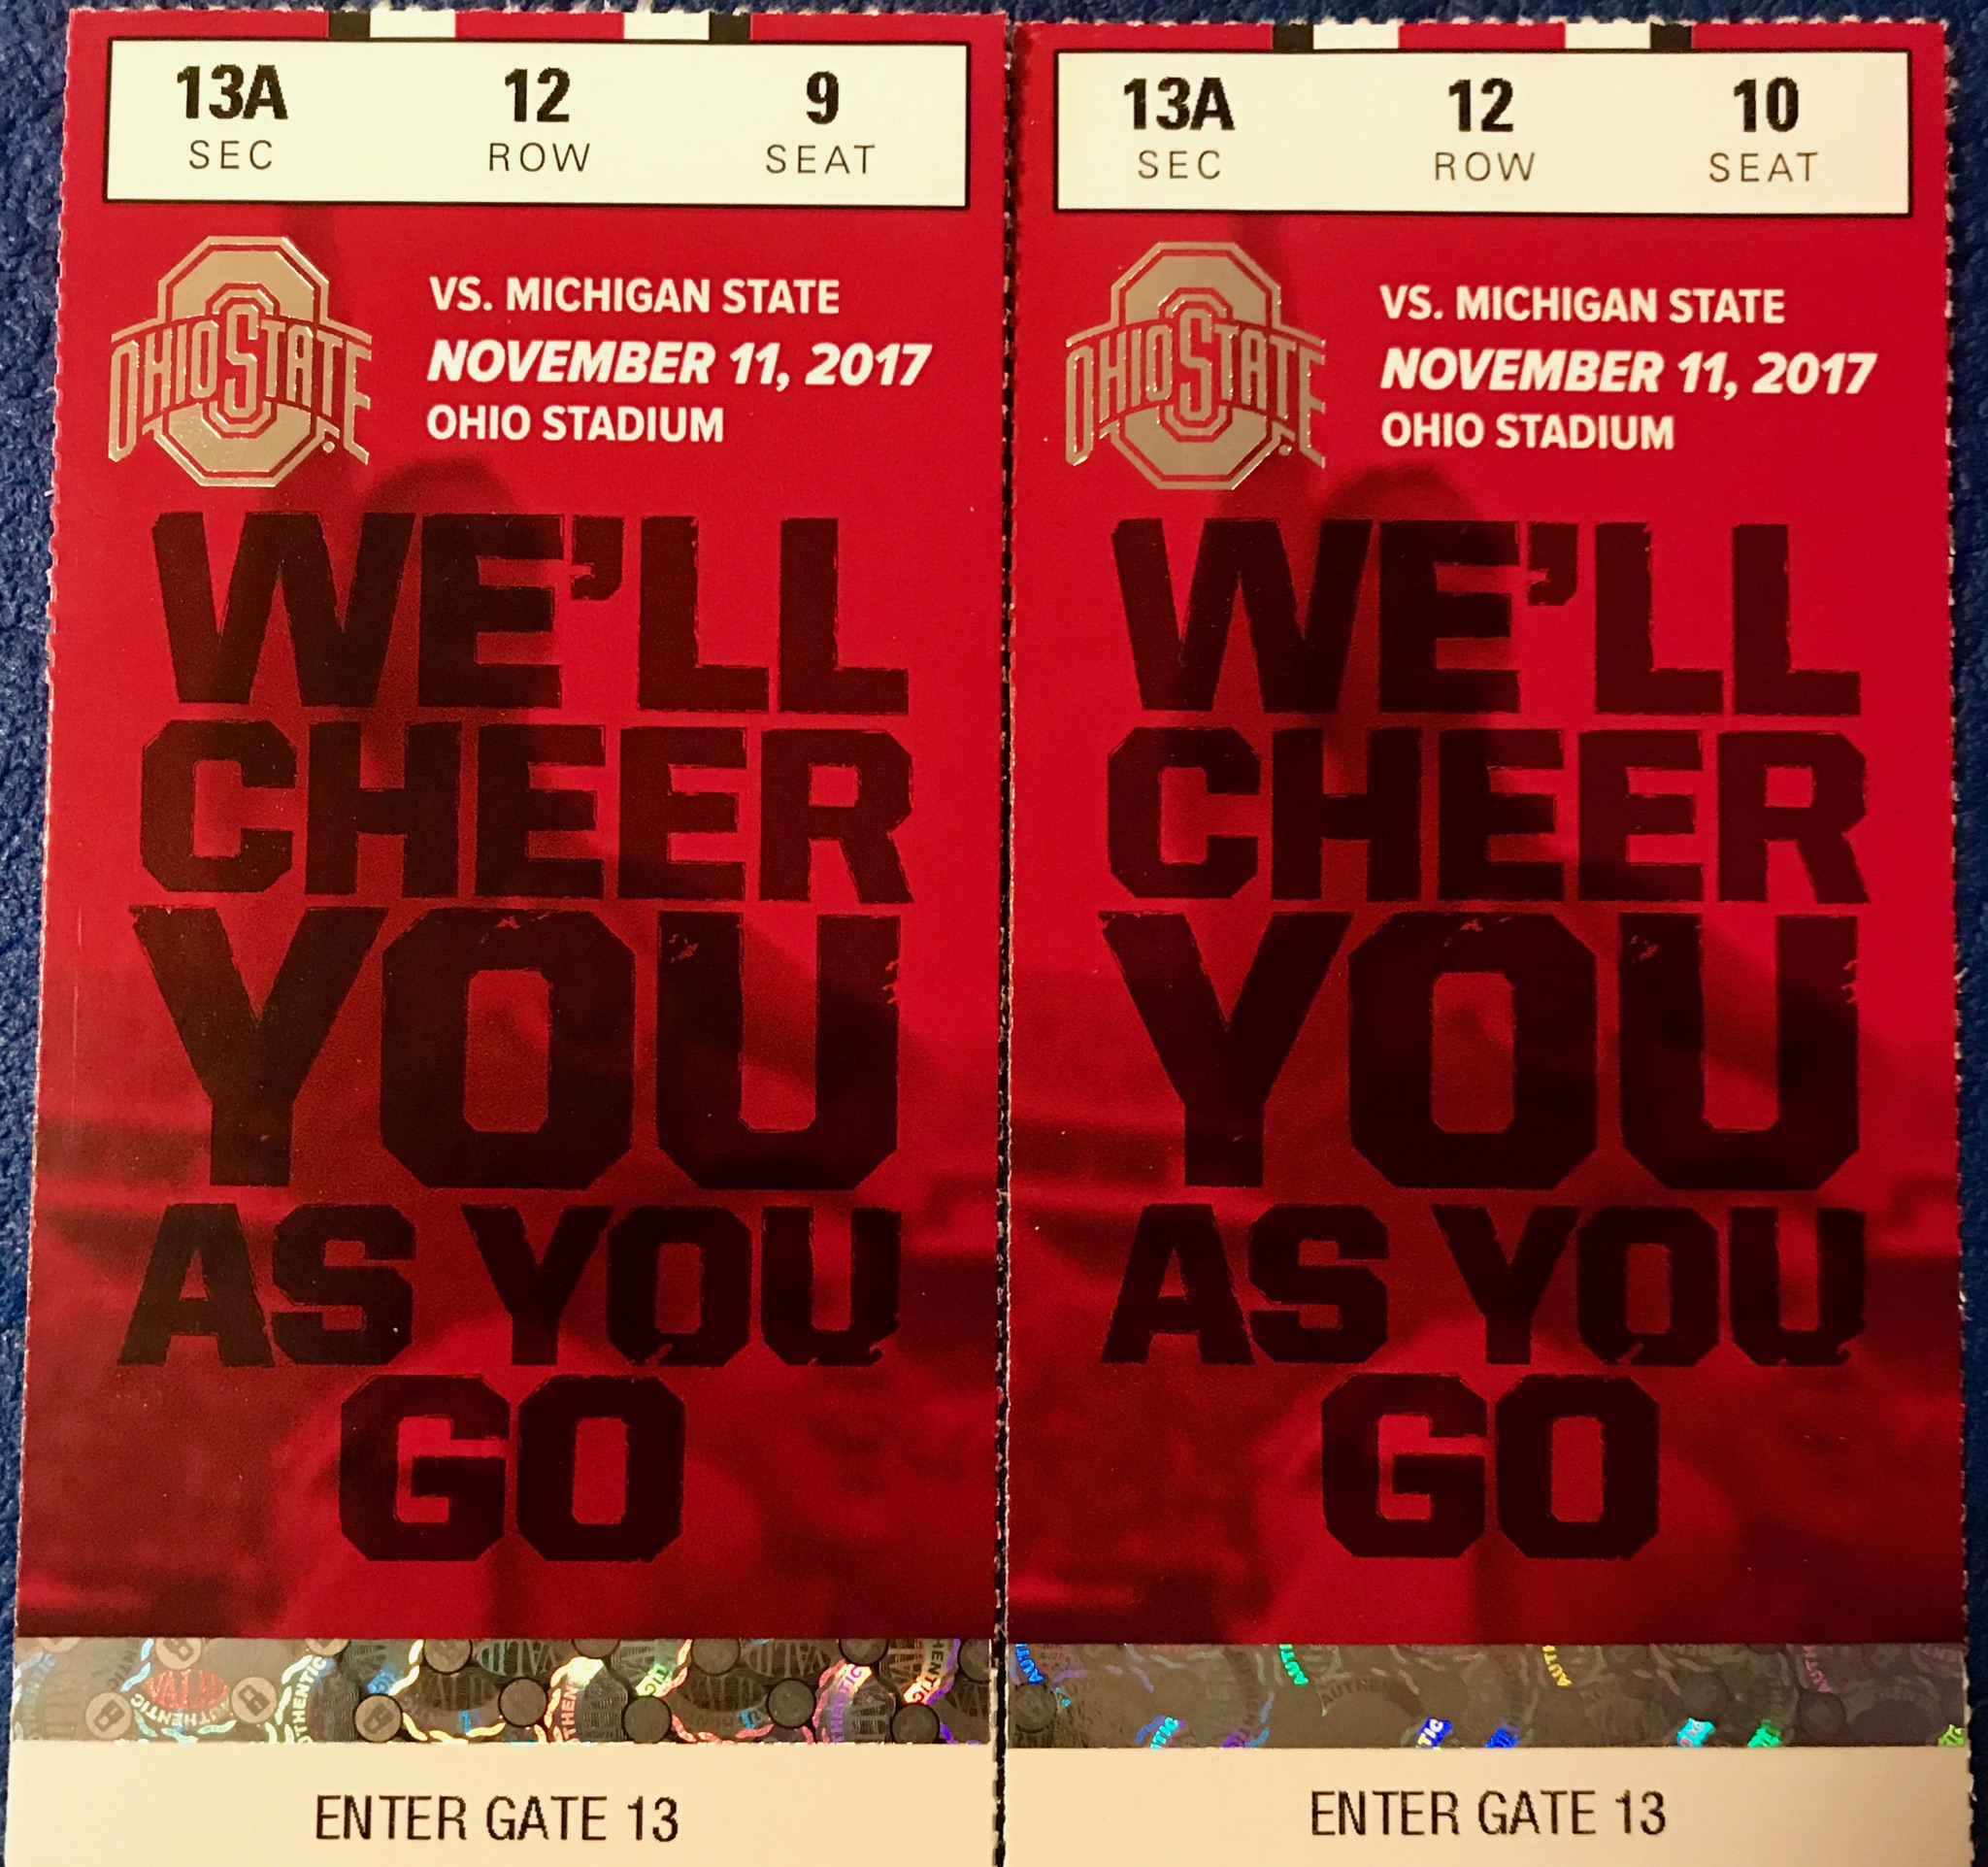 5 Raffle Tickets (Special Price) to win 2 Ohio State vs Michigan St   Football Tickets!